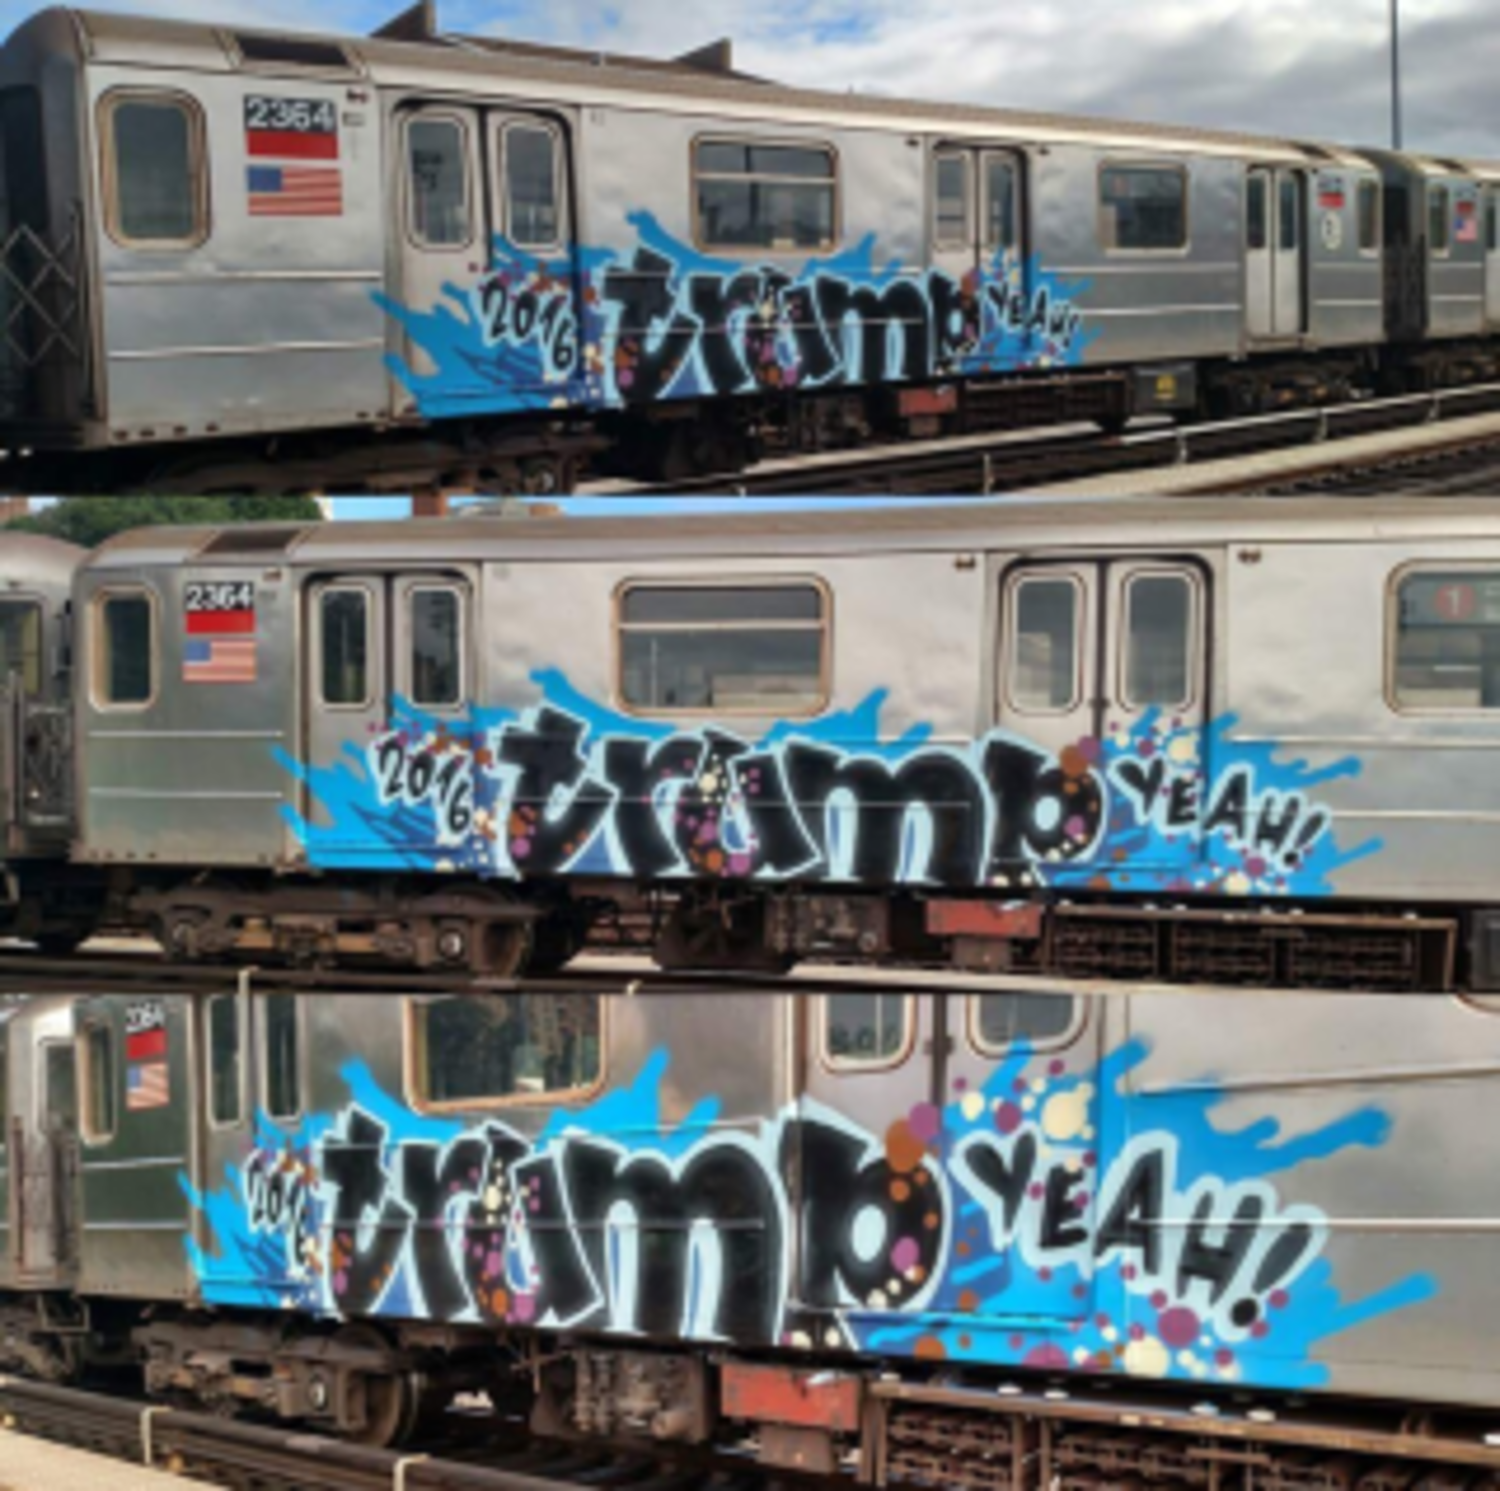 1 Train Gets Graffiti Bombed—Again, And What It Says Will Surprise You